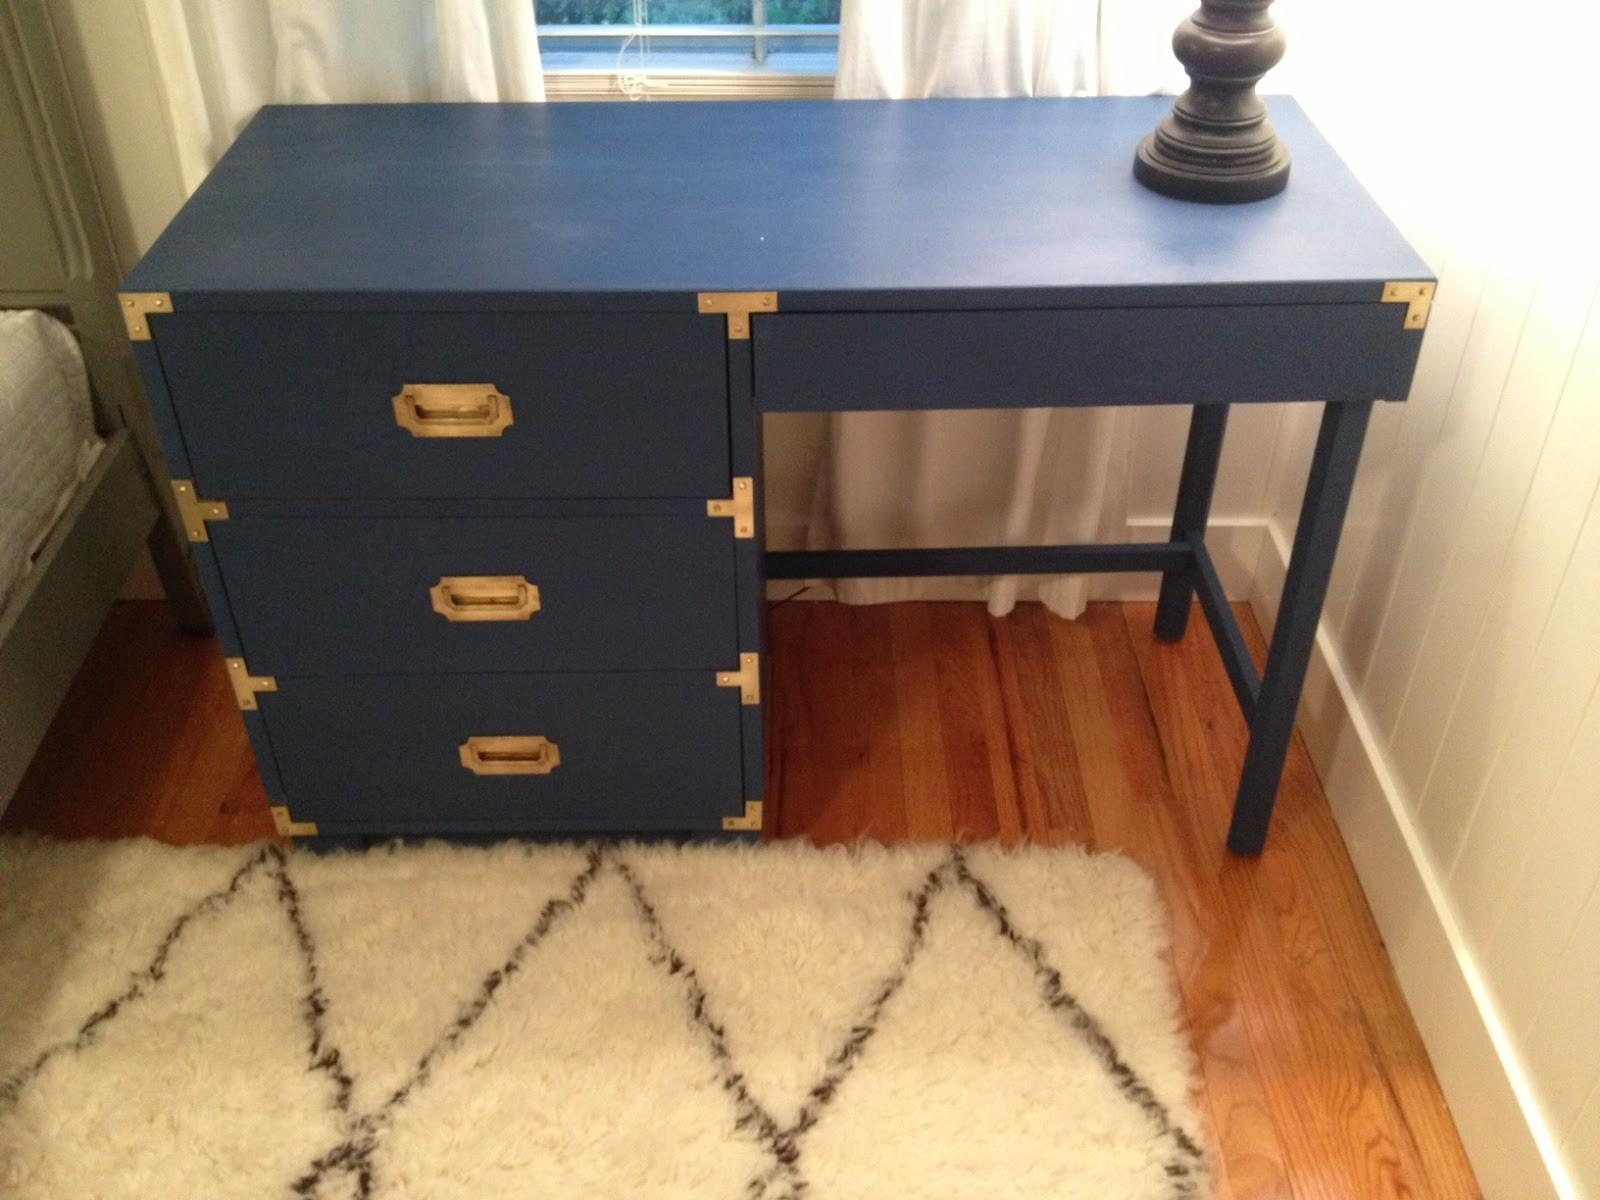 Finished Diy Campaign Desk Makeover Krystine Edwards